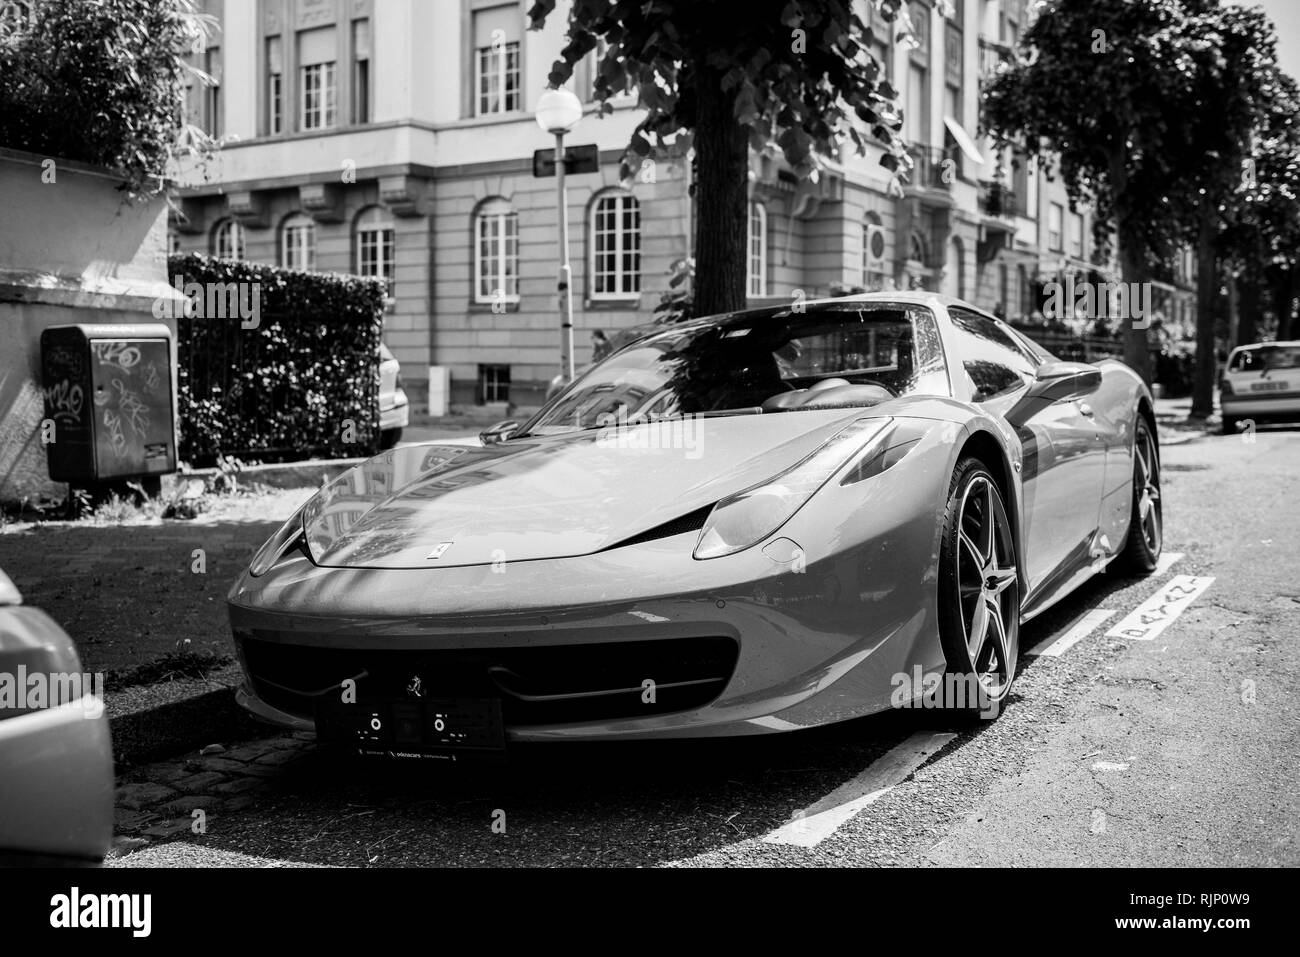 STRASBOURG, FRANCE - MAY 28, 2018: City parking with expensive luxury Ferrari car parked on street in sunlight - black and white - Stock Image